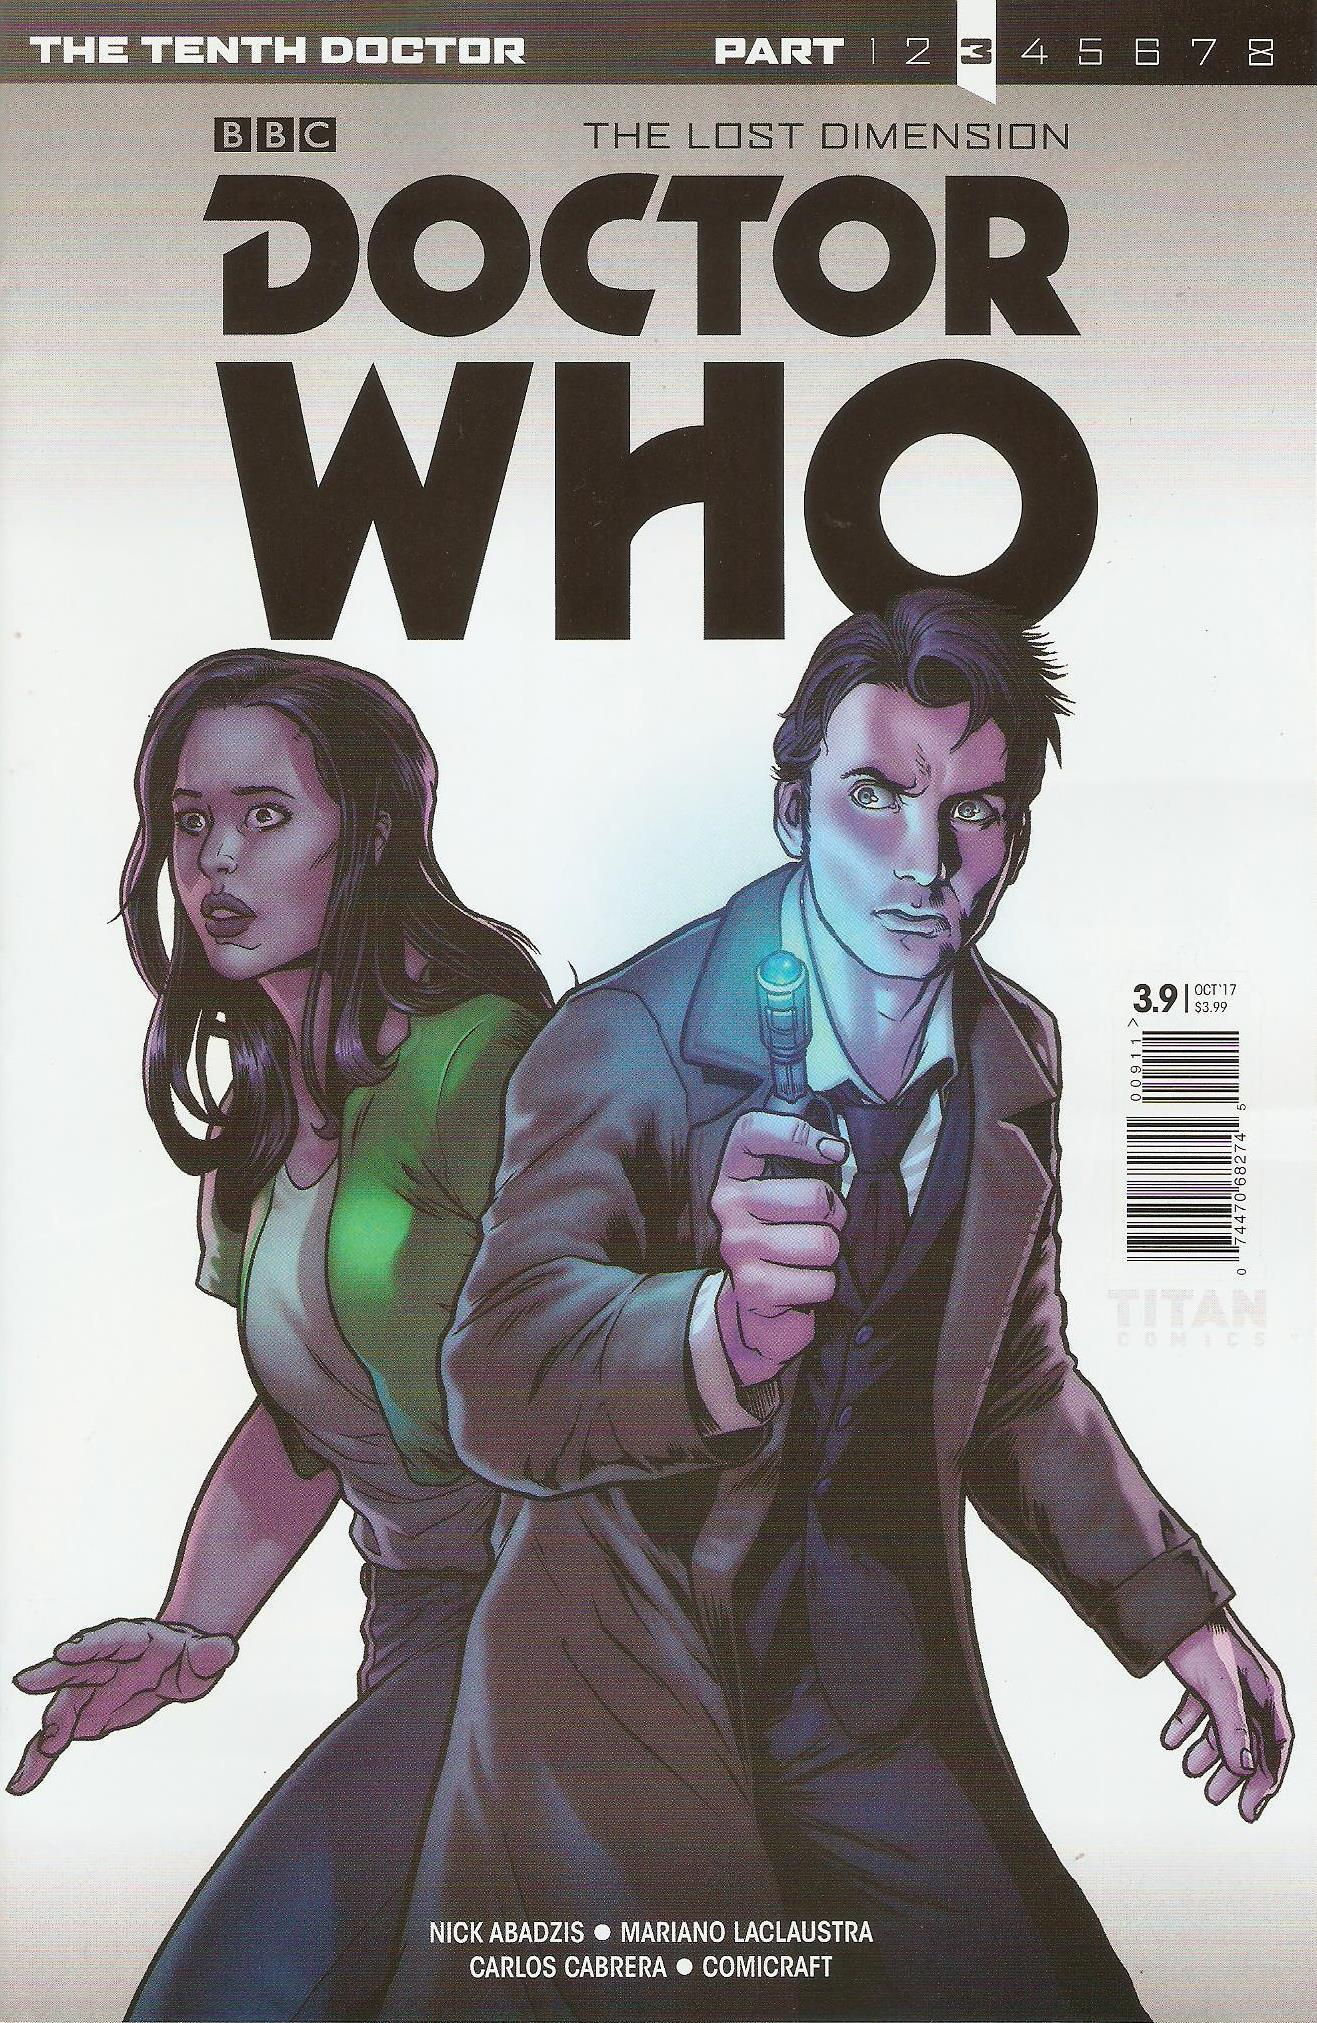 Tenth doctor year 3 issue 9a